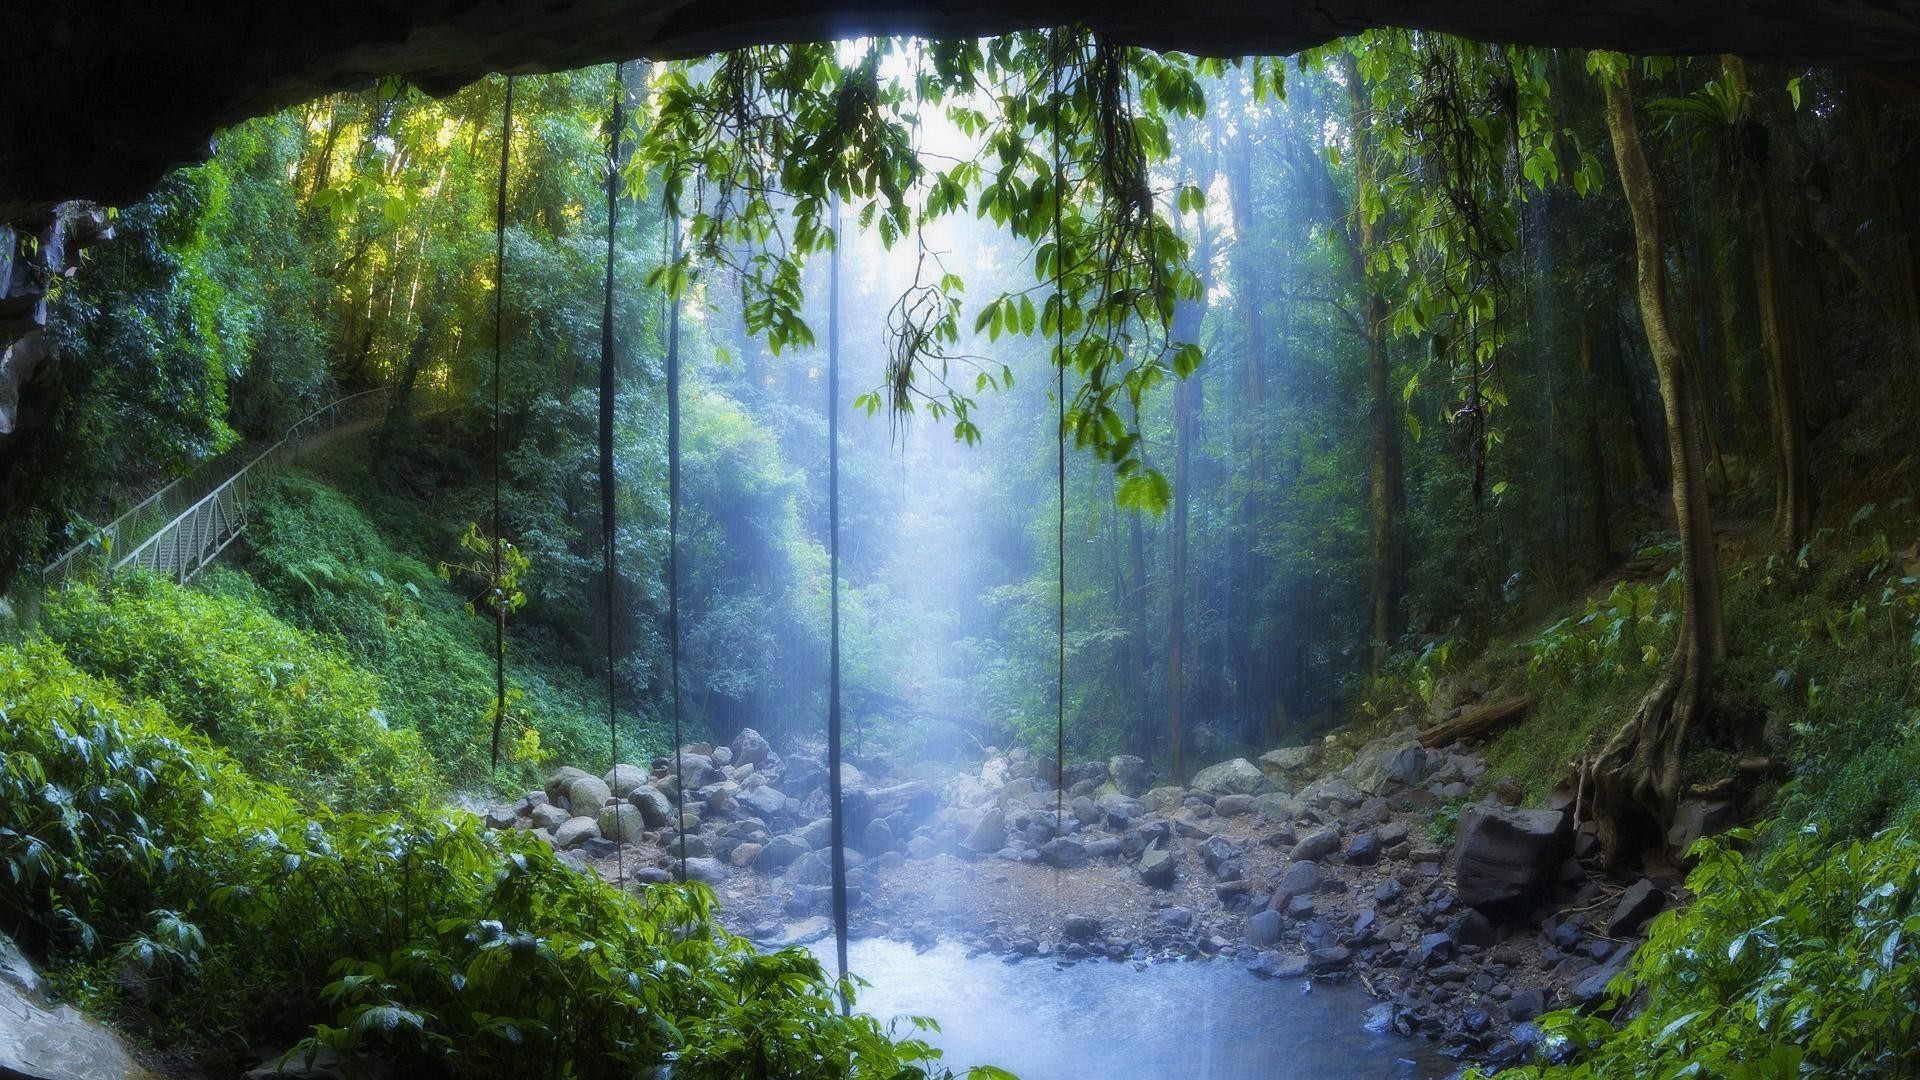 2560x1600 Wallpaper For Tropical Rainforest Rain Forest Hd Pics Iphone